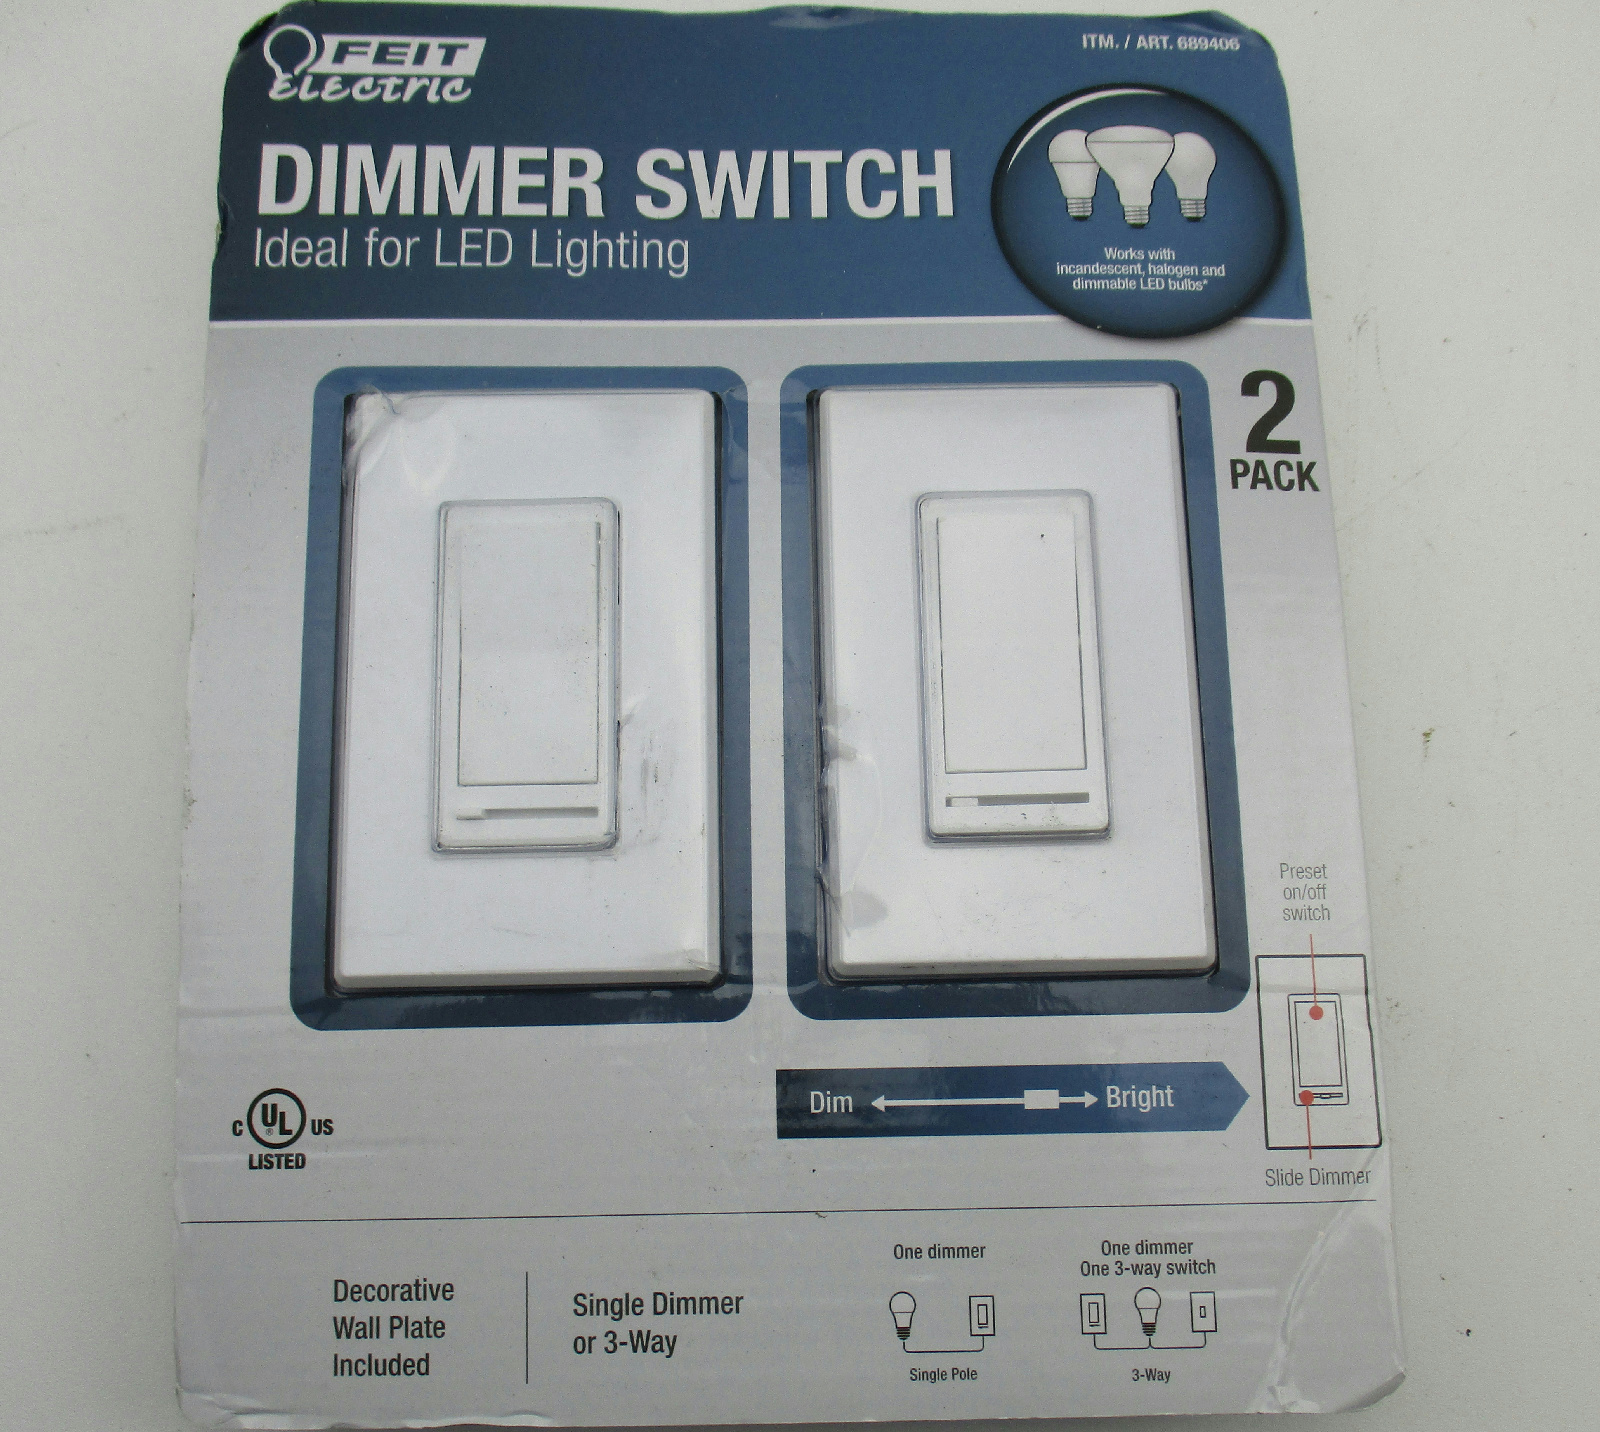 3 Way Dimmer Not Working Switches Doityourselfhelpcom Light Switch Diagram Wiring Dimming Led